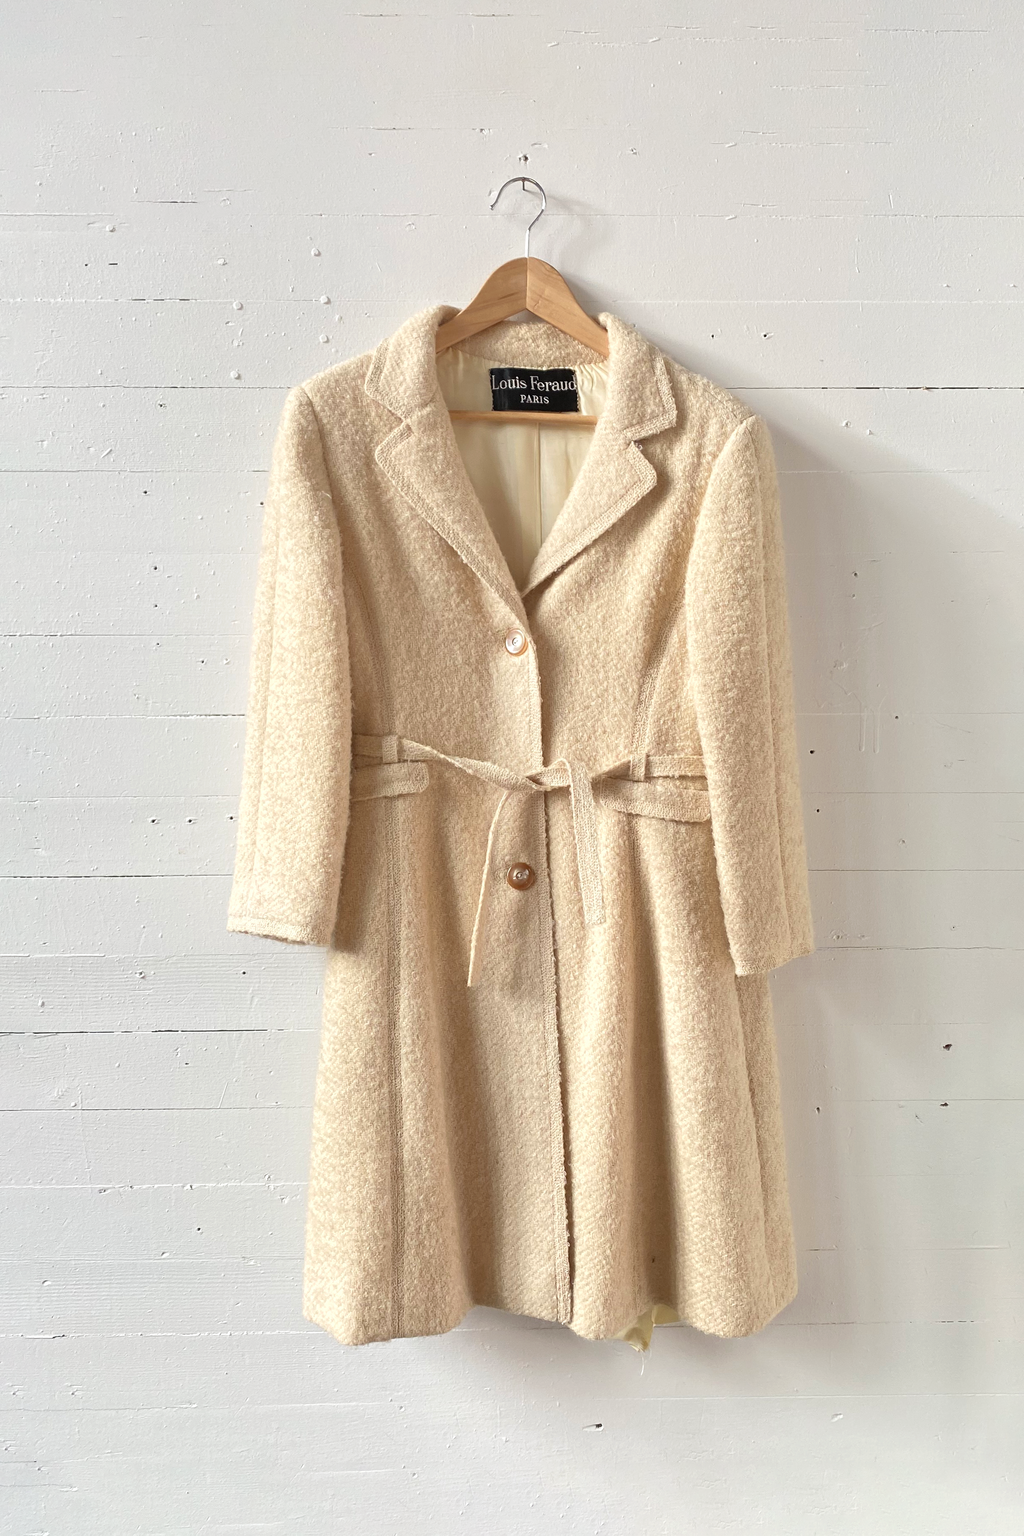 Louis Feraud Paris Wool Boucle Coat